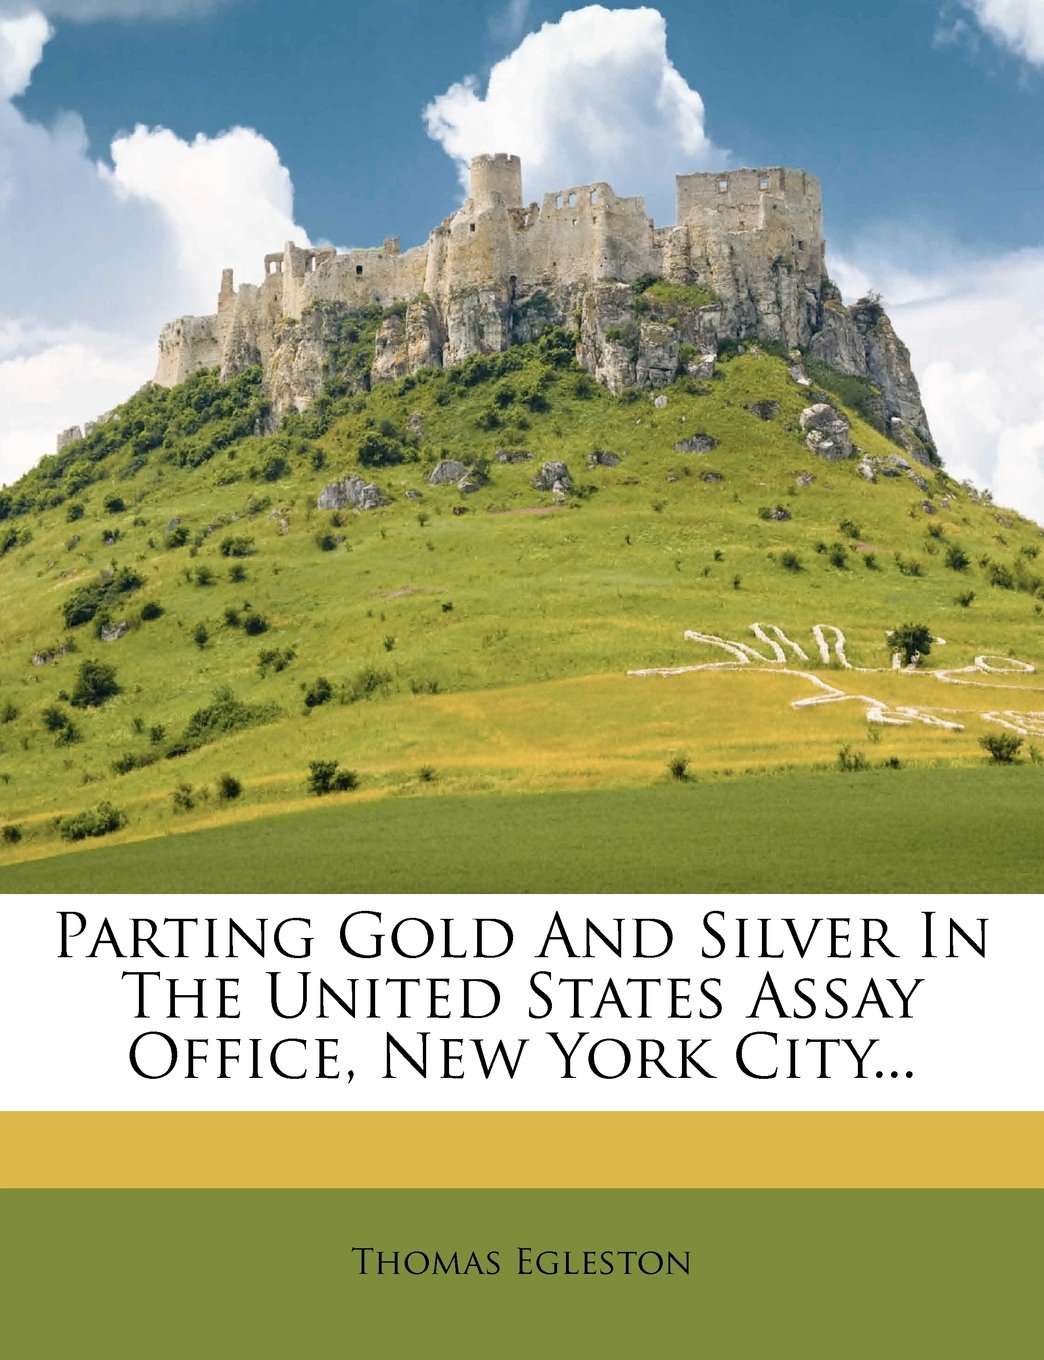 Read Online Parting Gold And Silver In The United States Assay Office, New York City... PDF